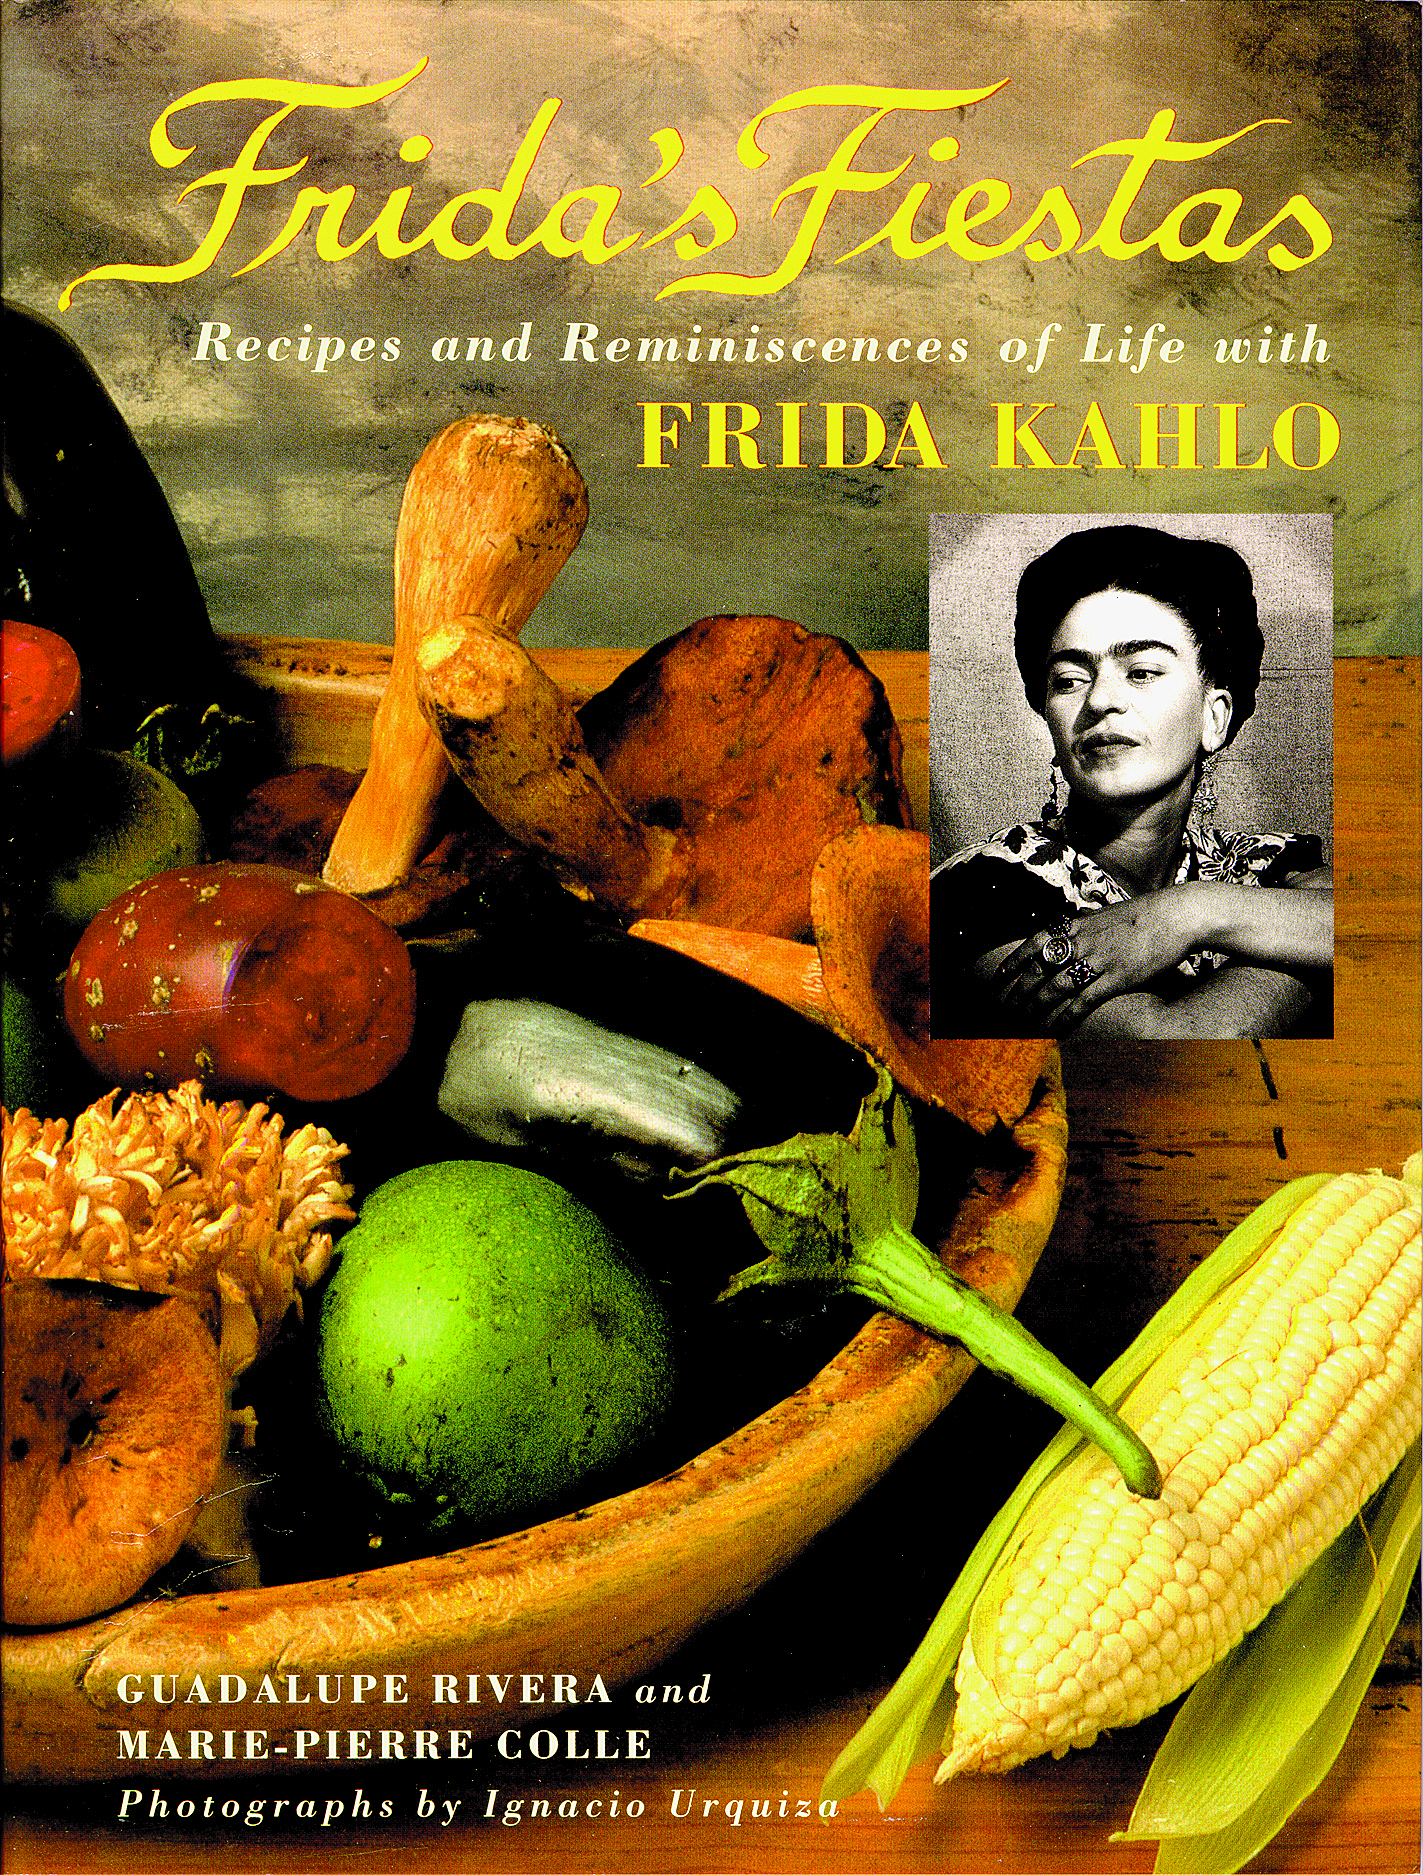 Spend Day of the Dead with Frida Kahlo